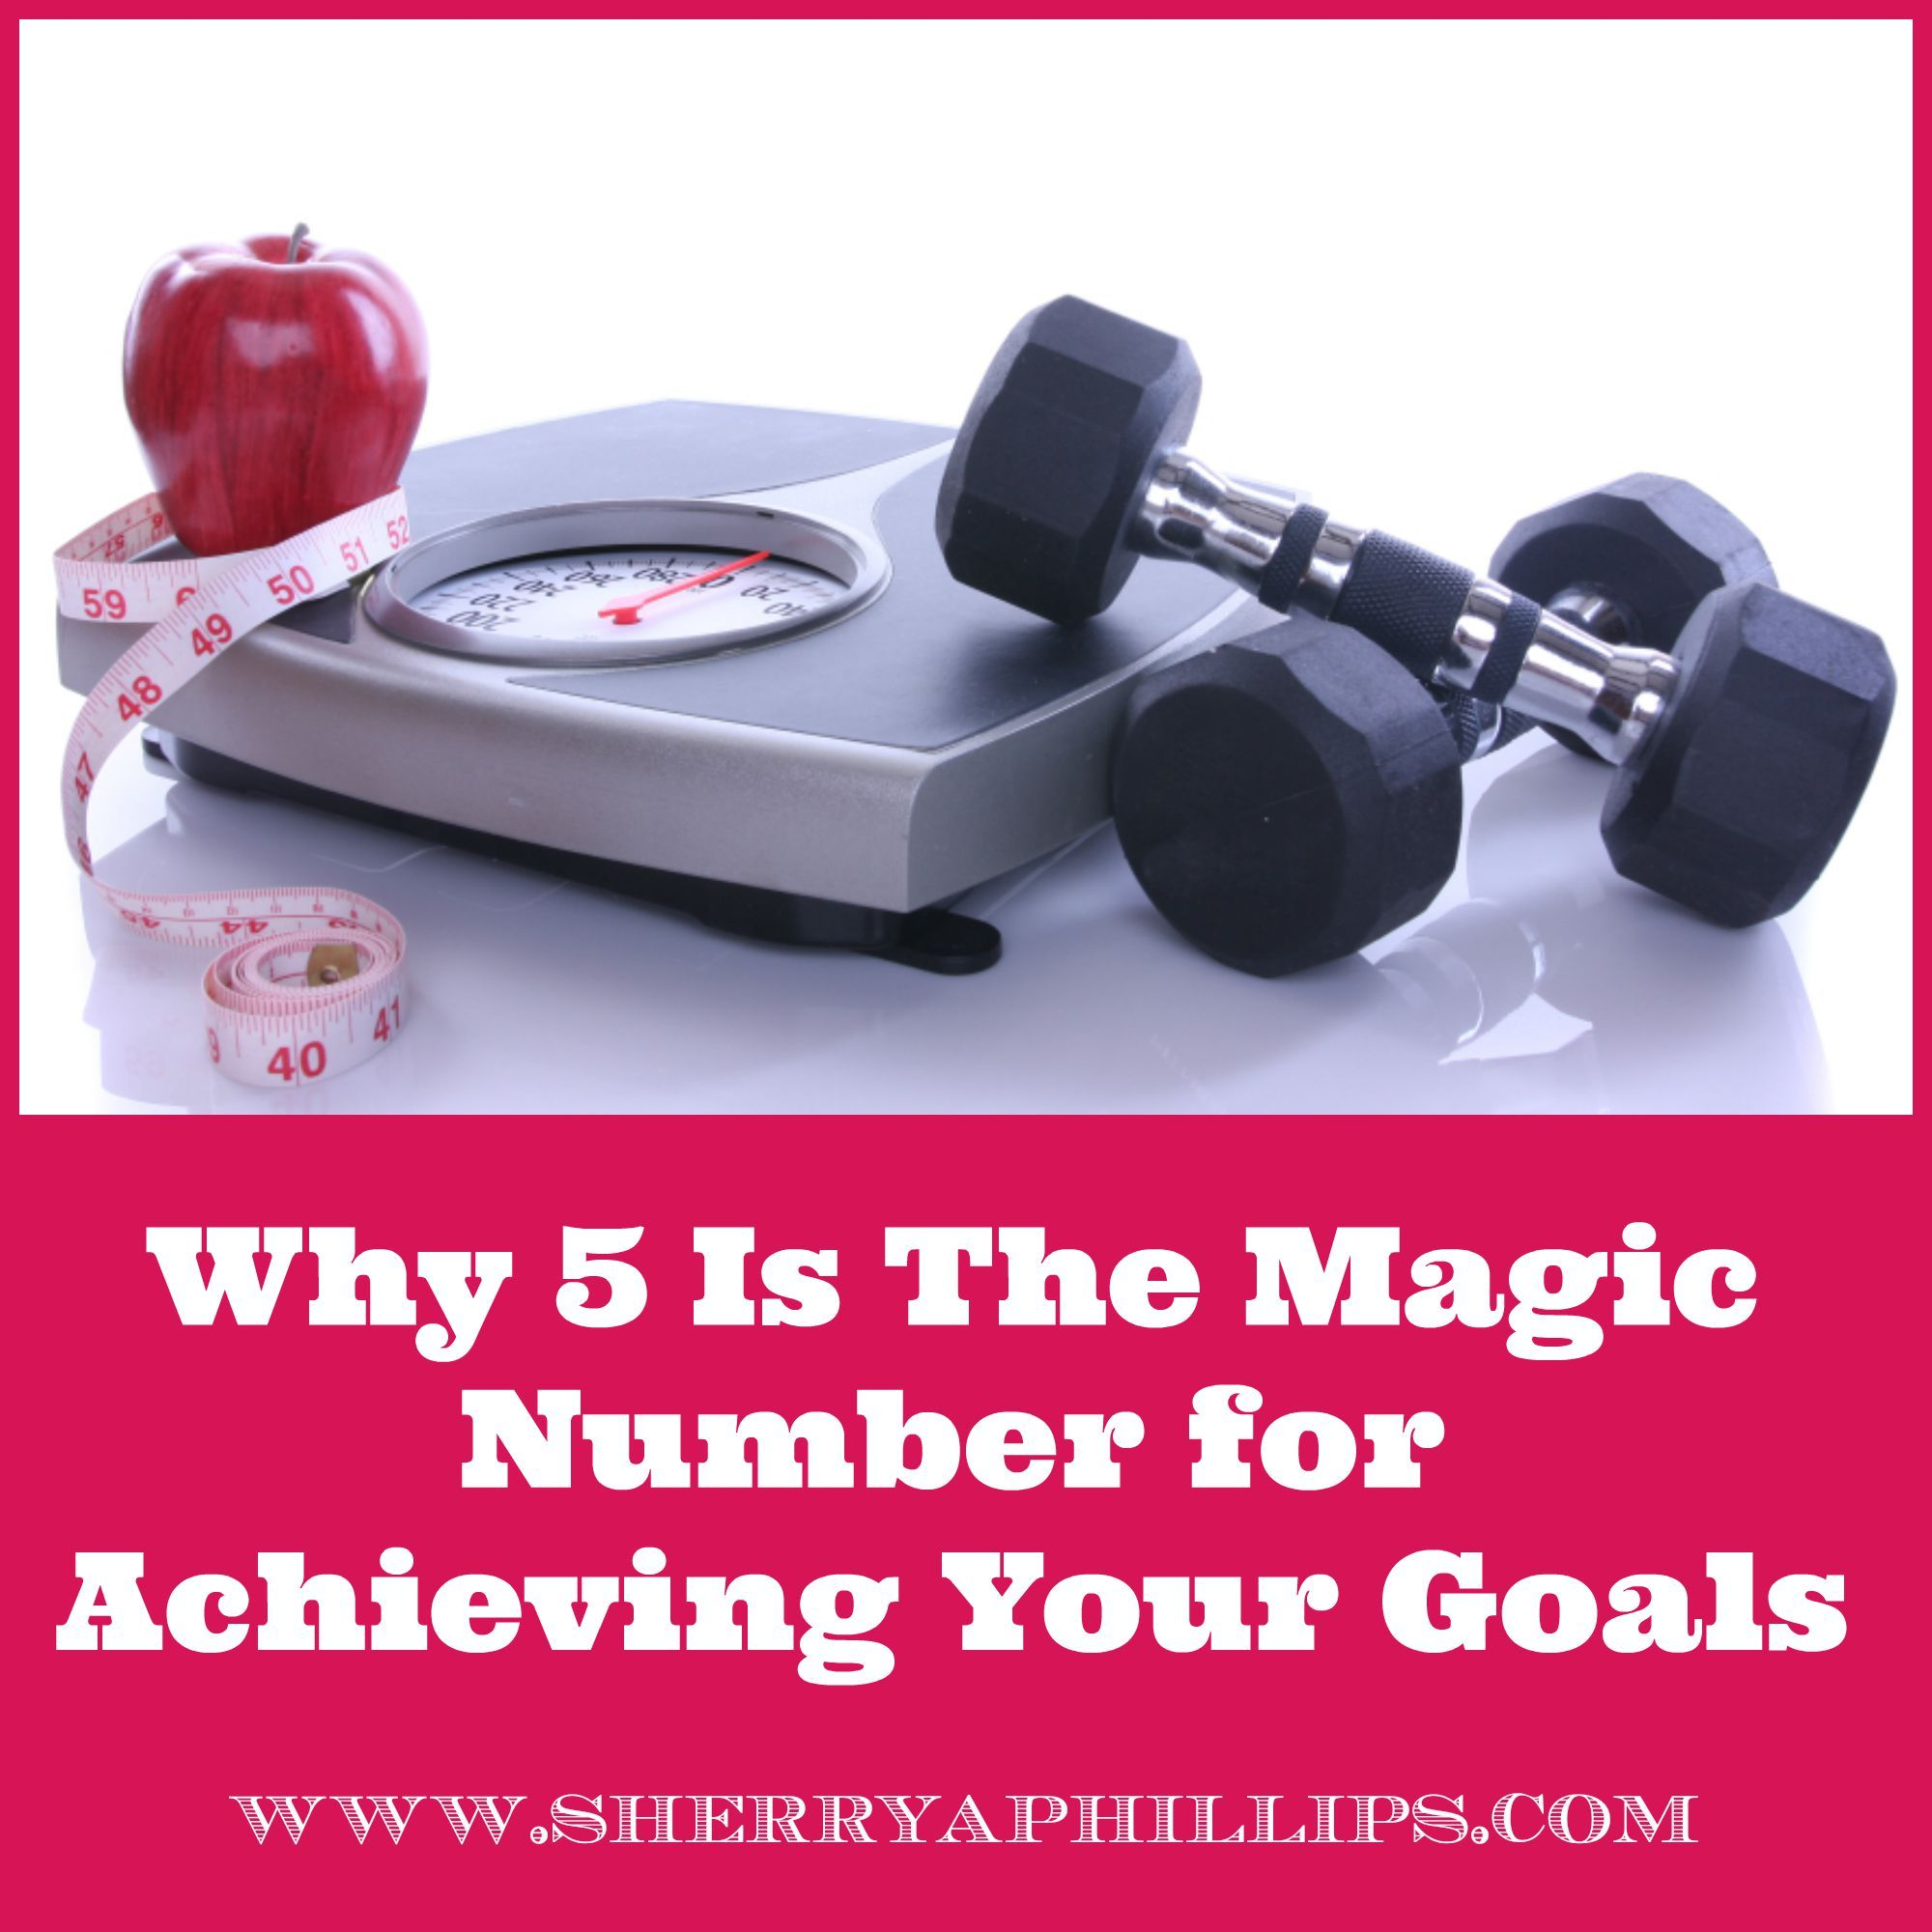 Why 5 Is The Magic Number For Achieving Your Goals at  http://sherryaphillips.com/why-5-is-the-magic-number-for-achieving-your-goals/  #Success #Goals #Motivation Weight Loss Success Tips